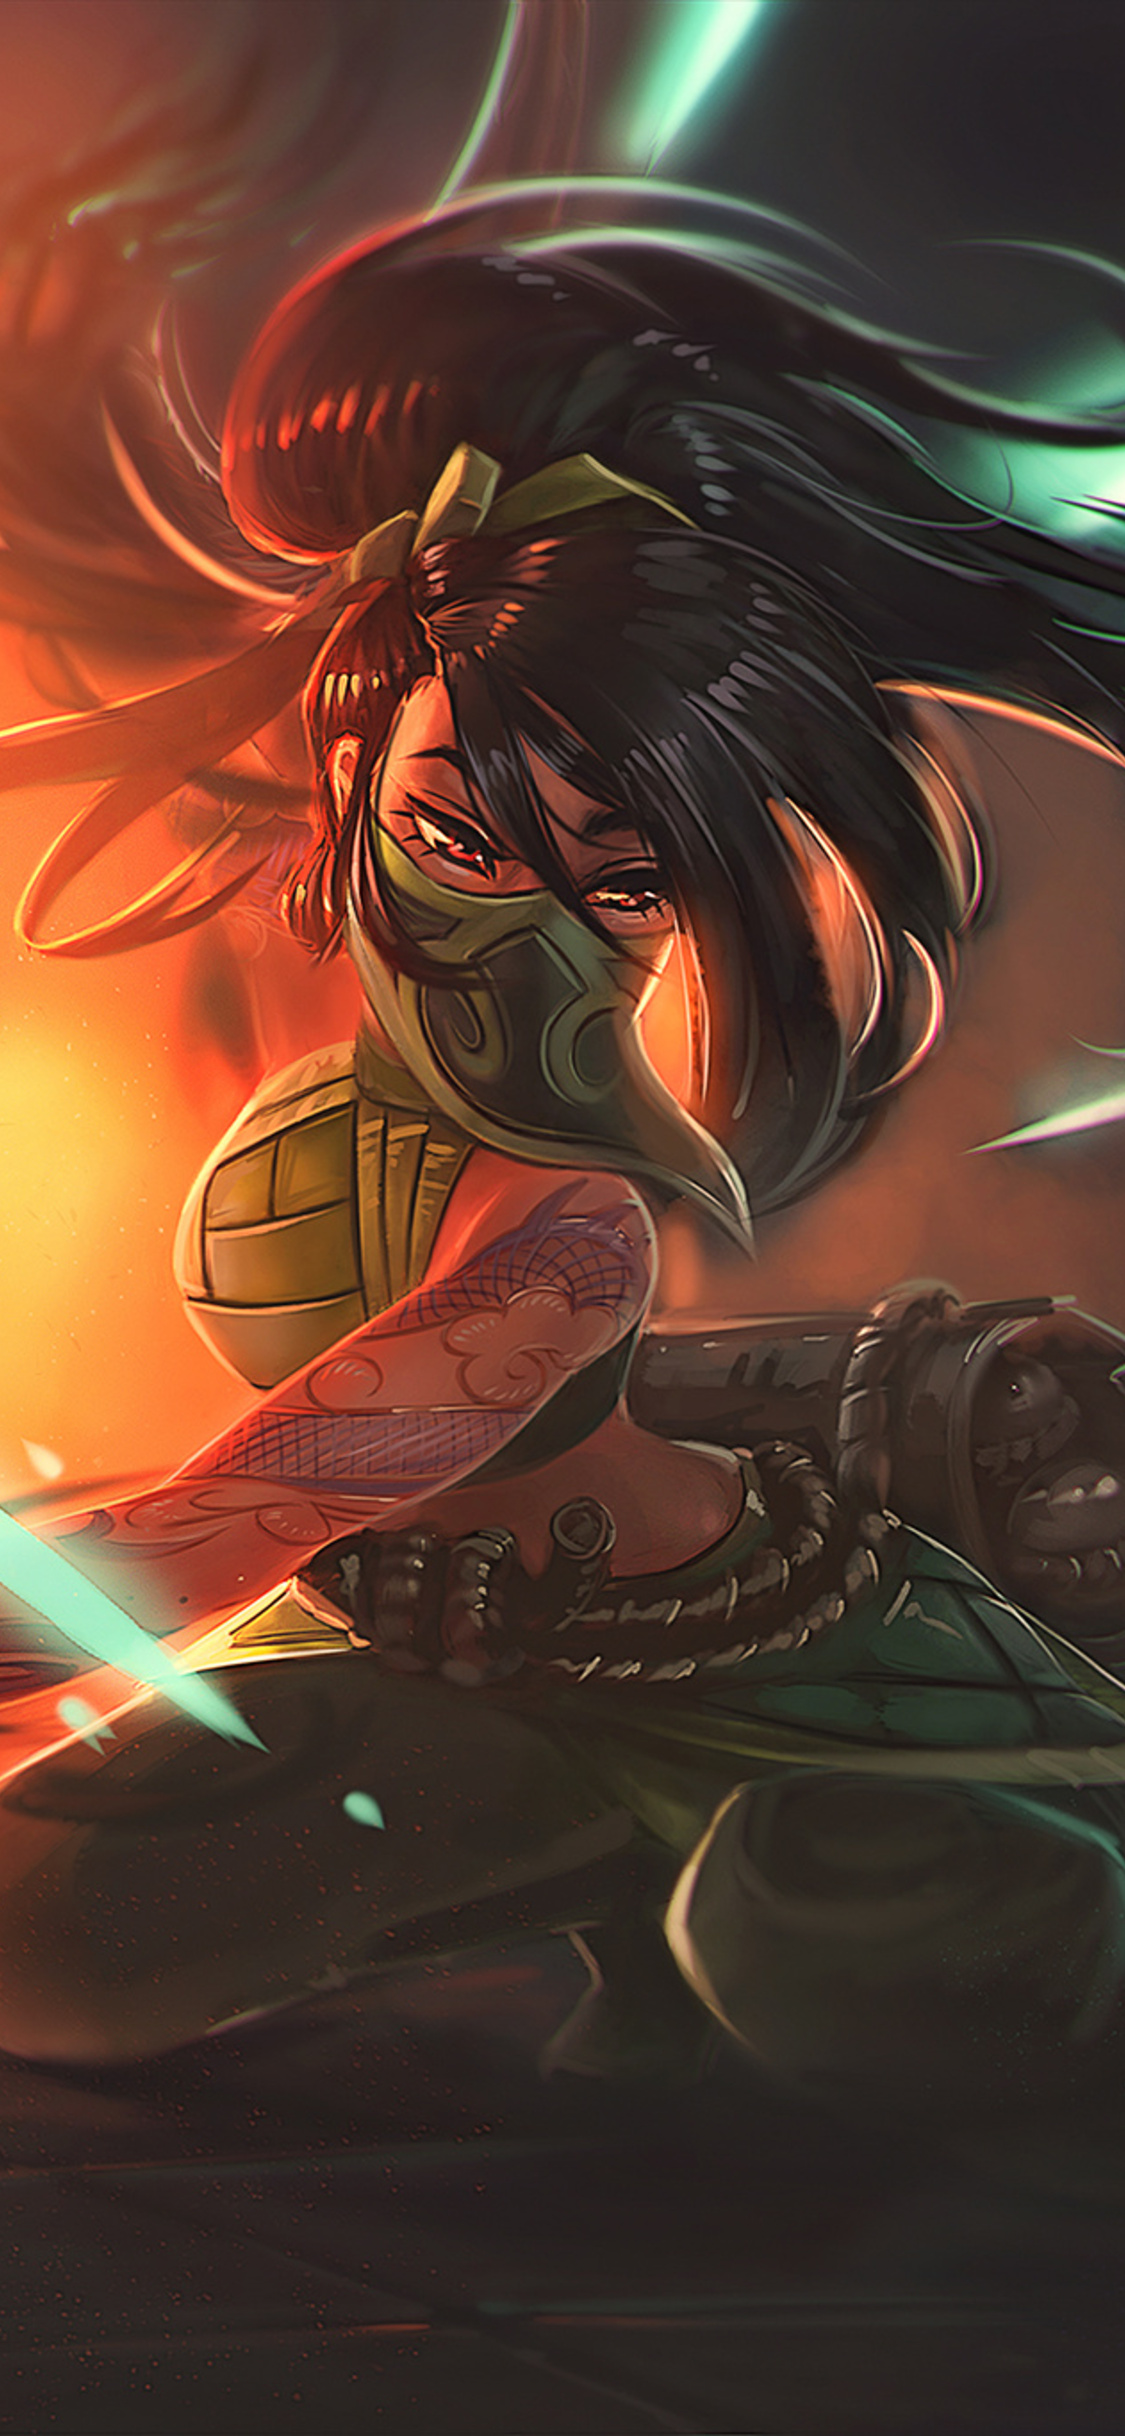 Akali League Of Legends Art Fz